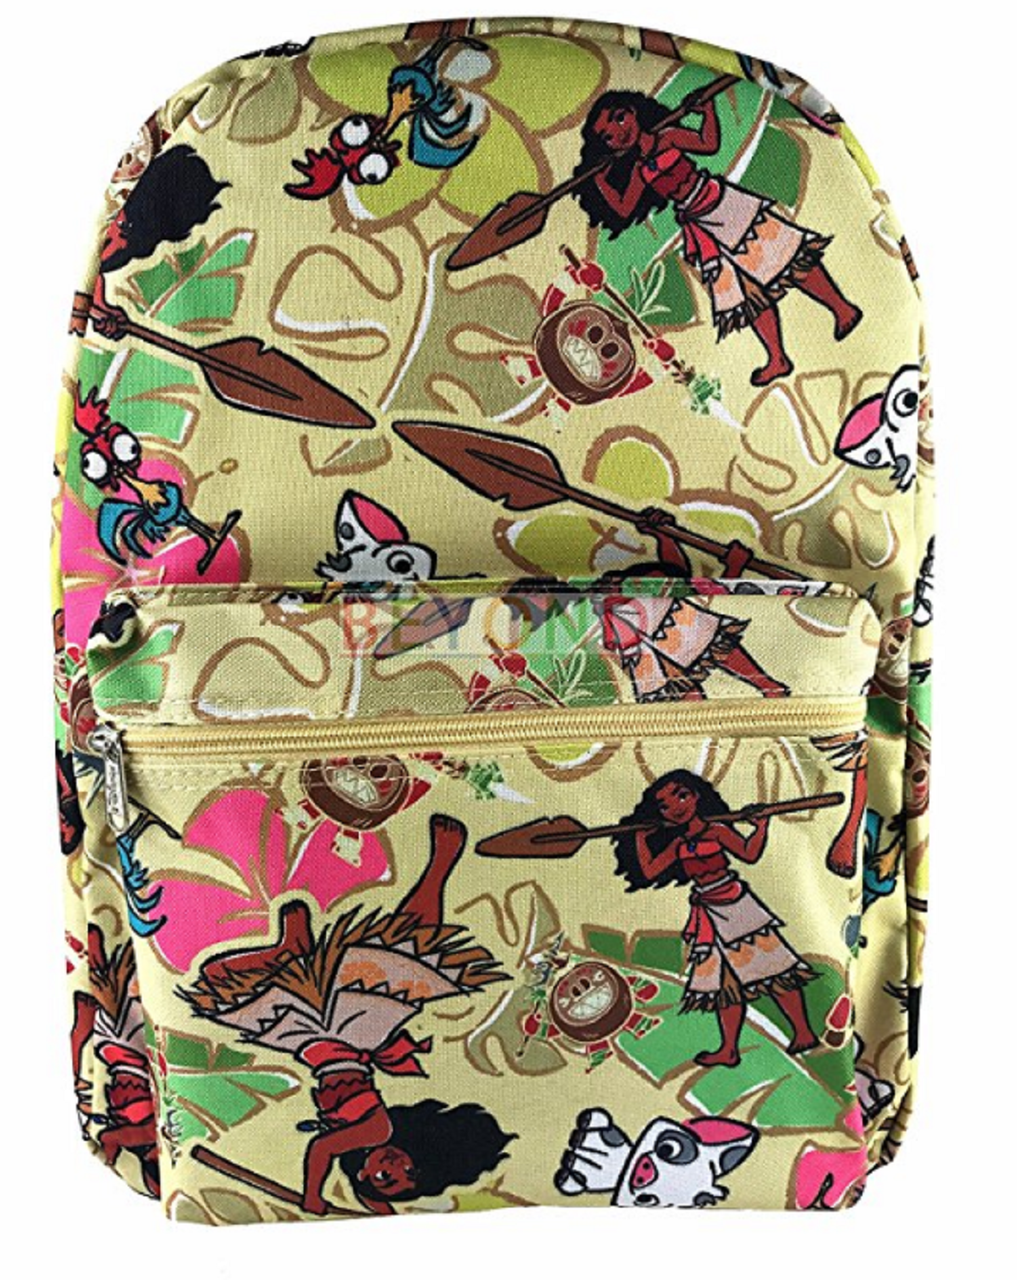 Backpack - Moana - Large 16 Inches - Cream - All Over Print